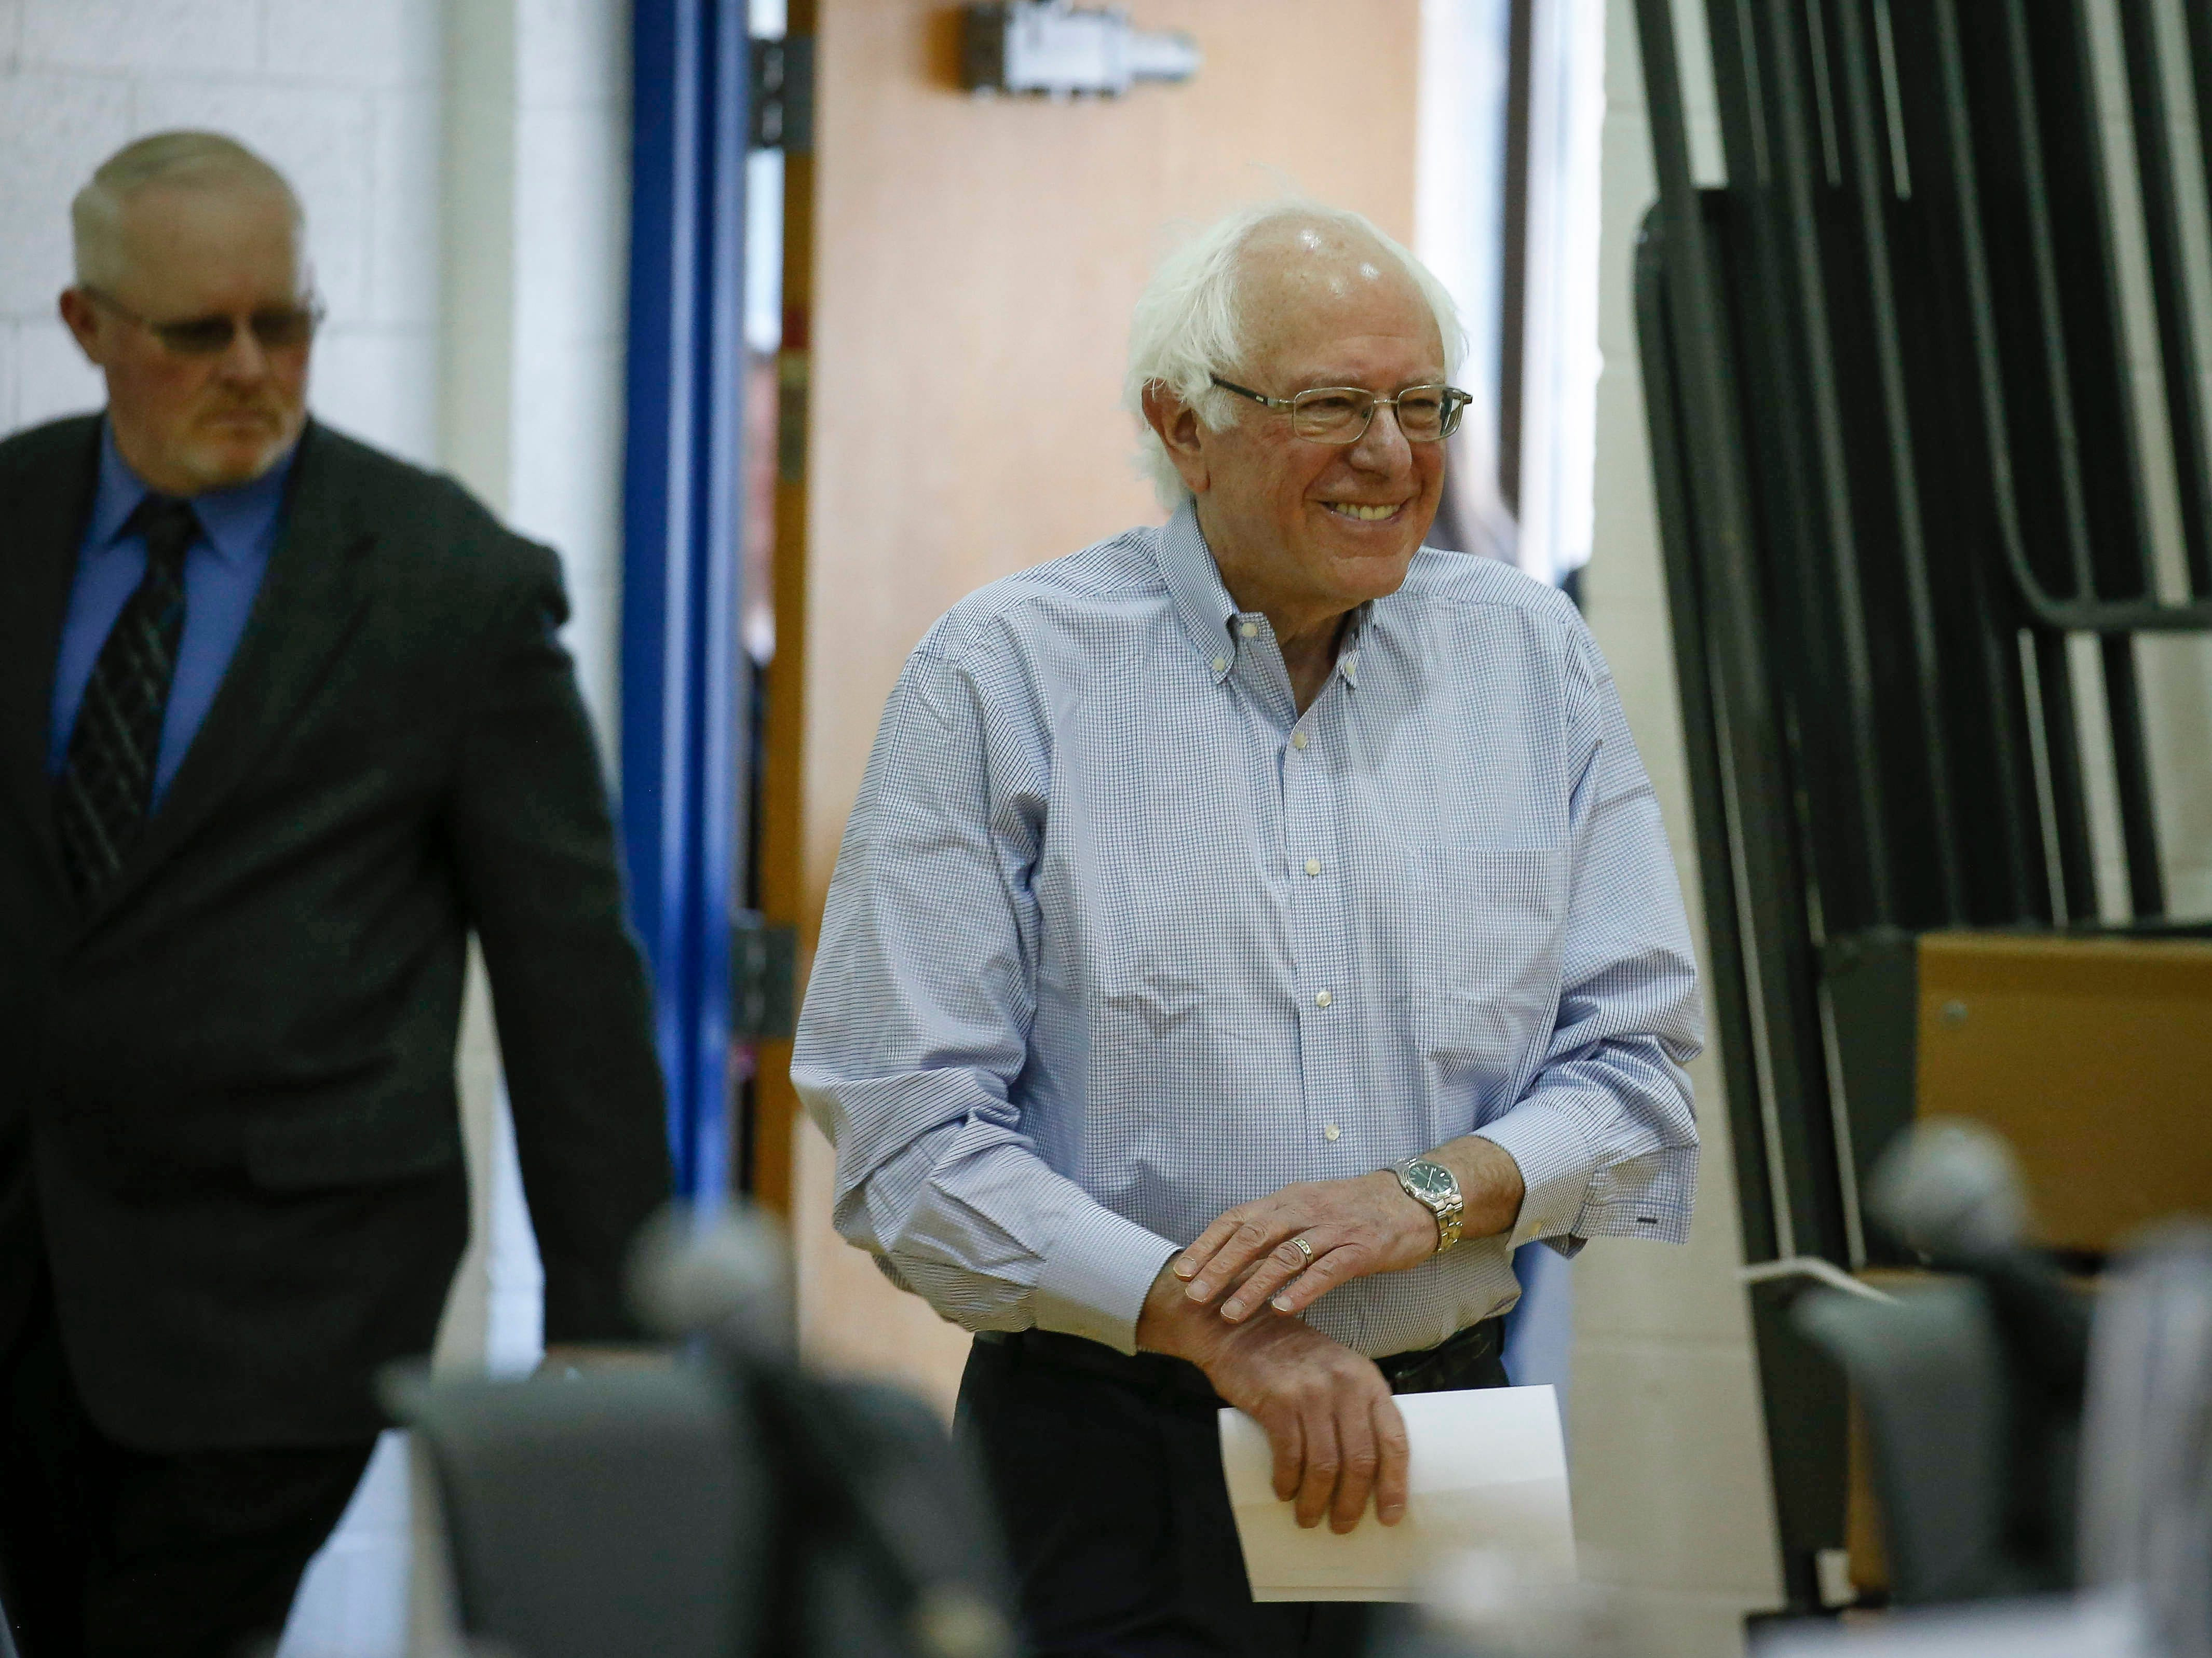 U.S. Senator and Democratic presidential candidate hopeful Bernie Sanders enters the room for a town hall style meeting at West Middle School in Muscatine on Saturday, April 6, 2019.